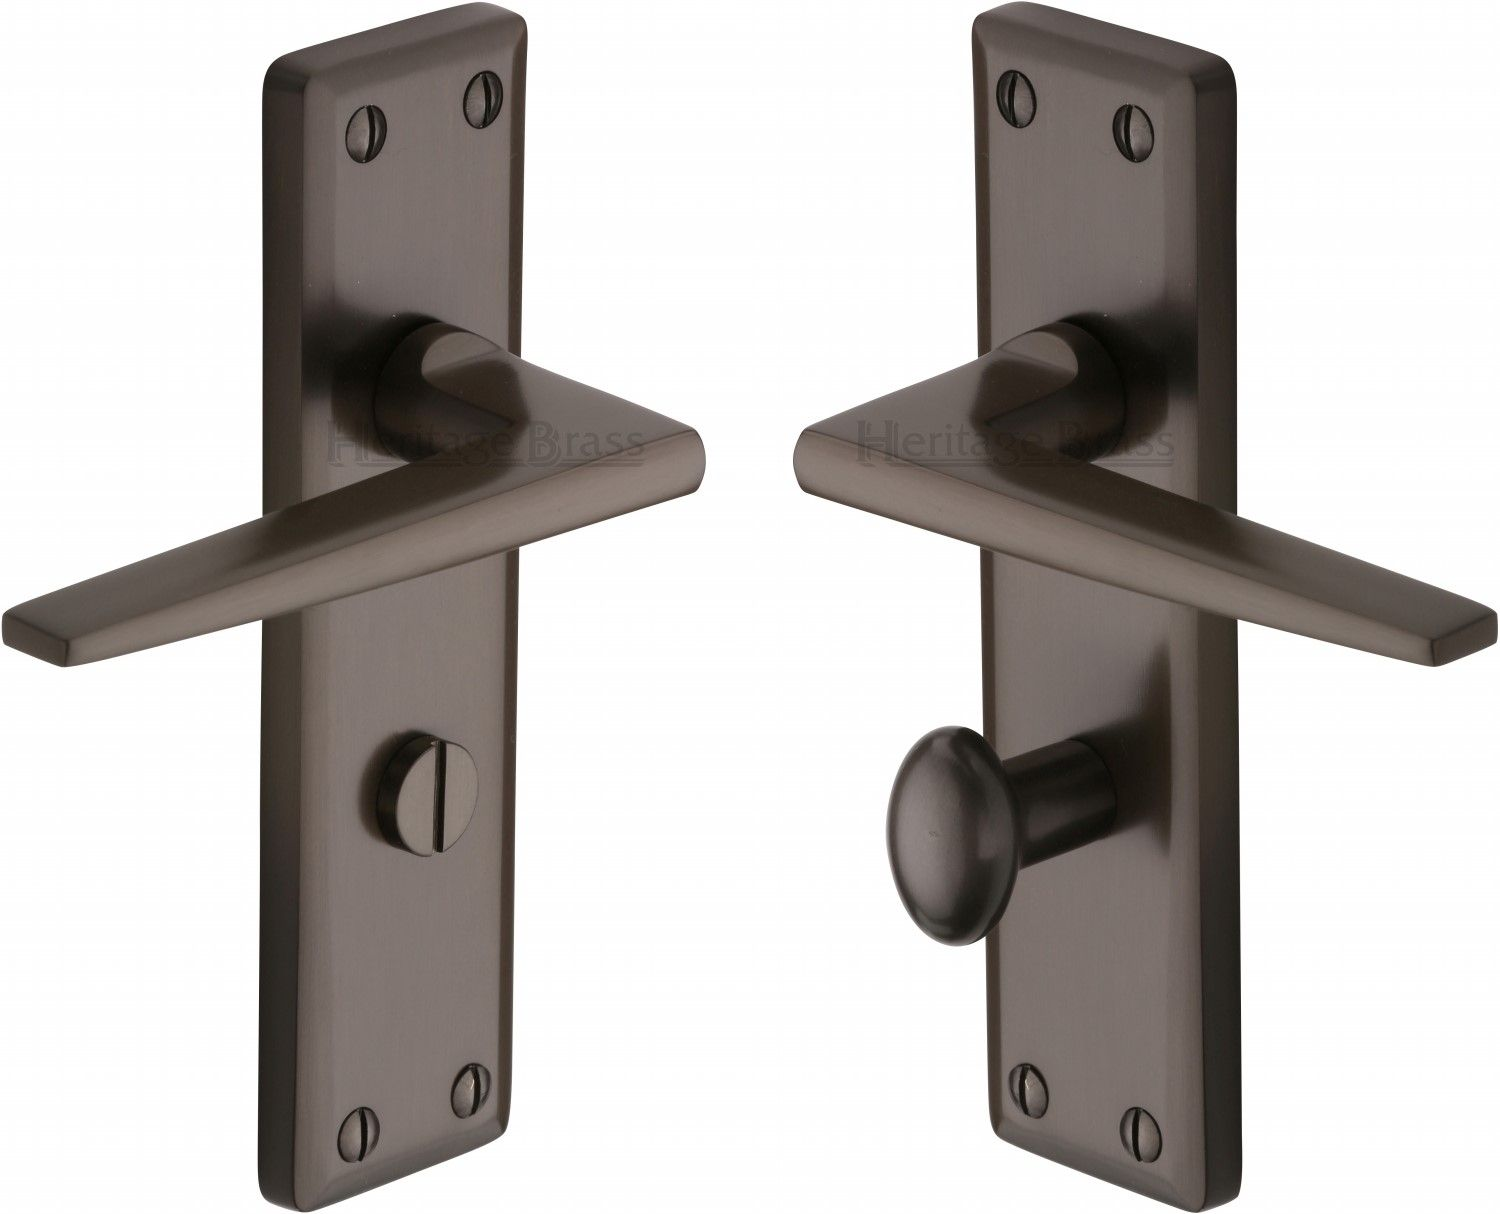 locking kitchen cabinets m heritage brass ken6830mb kendal door handle on 3836